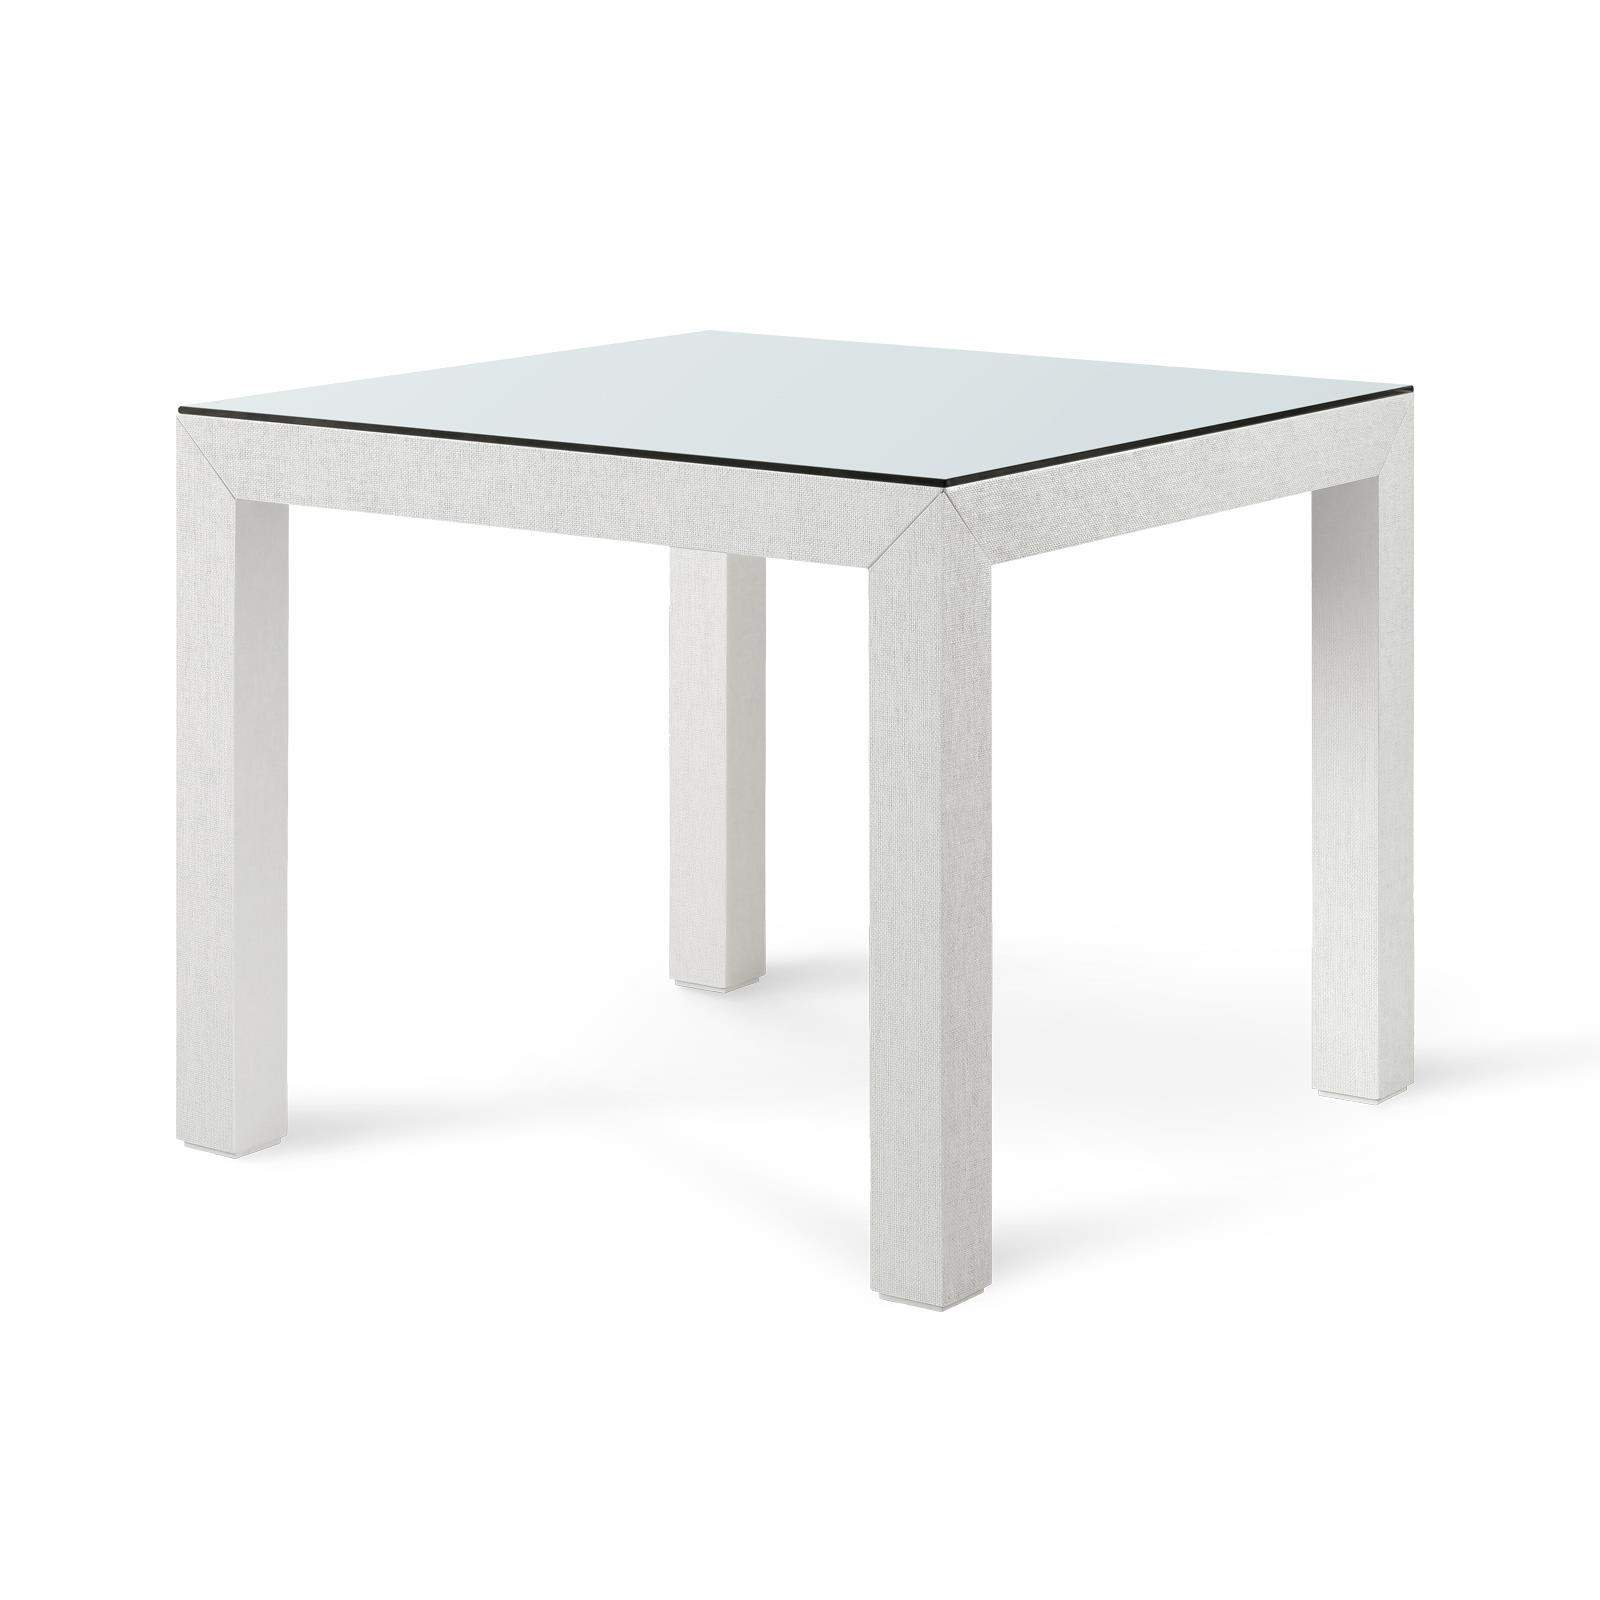 Bungalow 5 - VALENTINA GRASSCLOTH GAME TABLE in WHITE